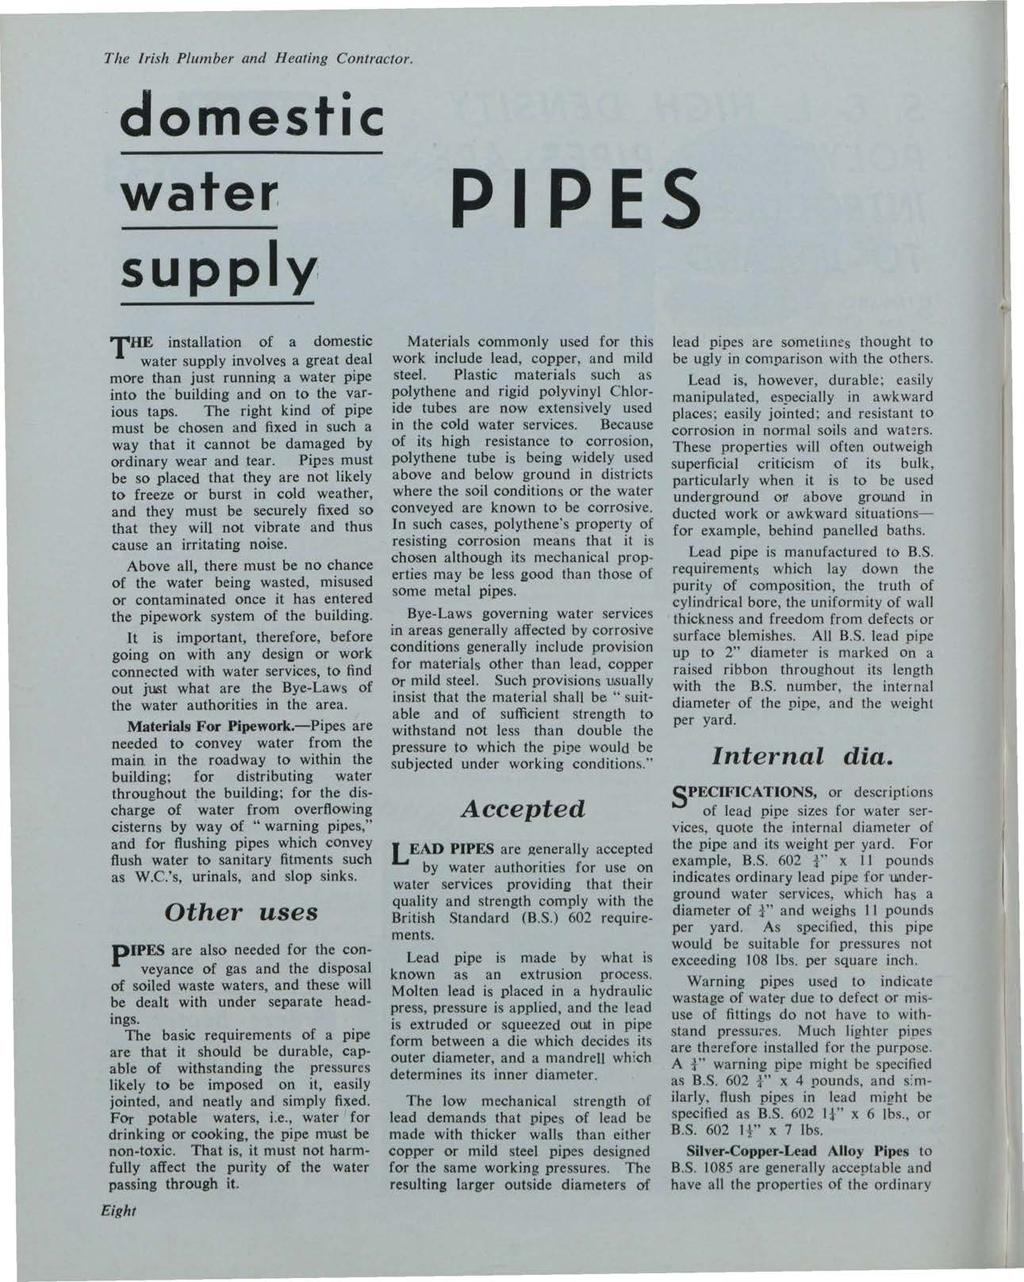 The Irish Plumber and Heating Contractor. Building Services News, Vol. 2, Iss. 12 [1963], Art.